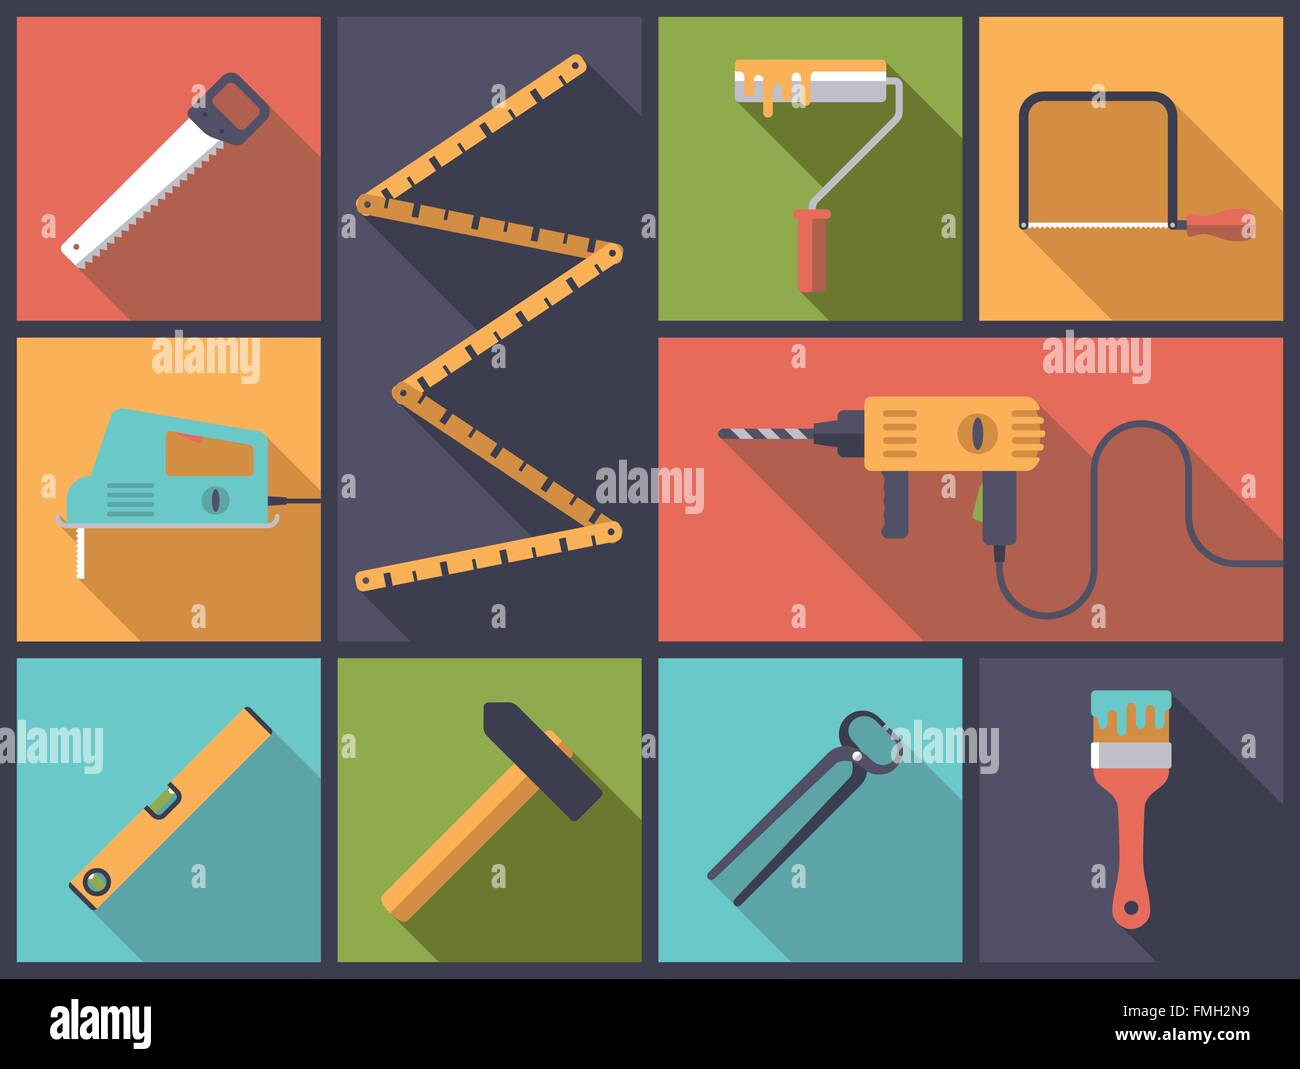 Flat design illustration with various icons related to home improvement and crafts - Stock Image